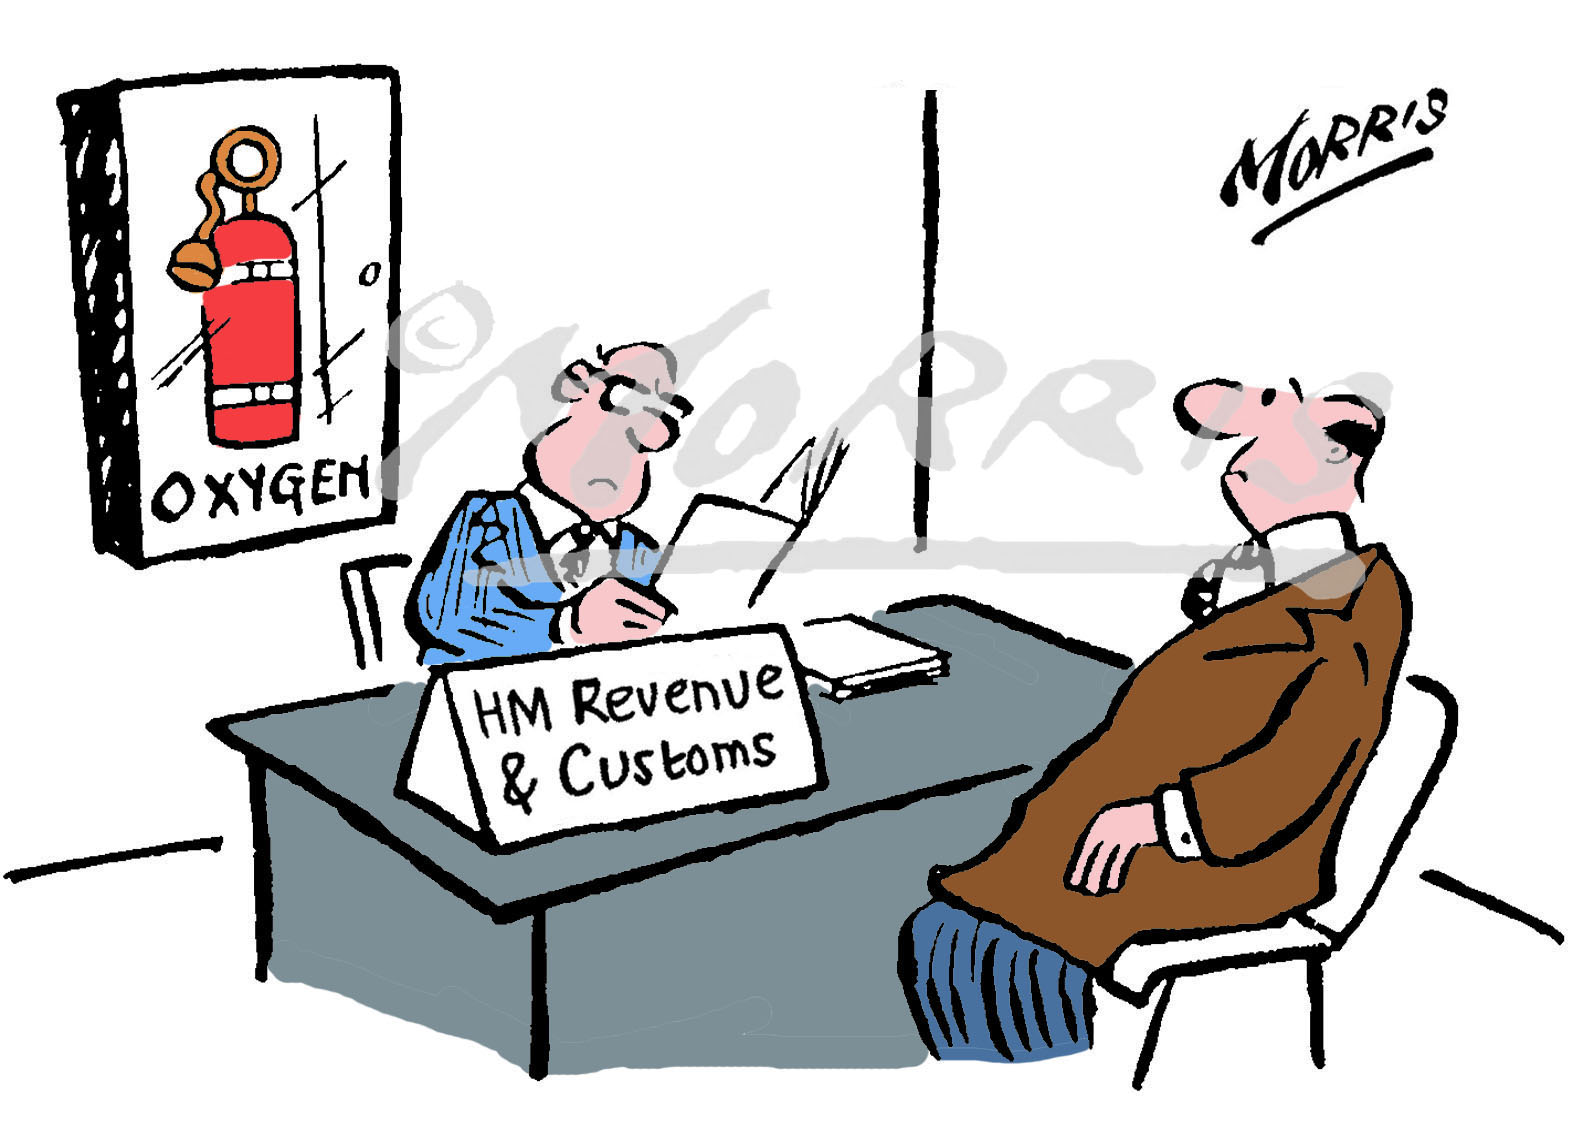 HMRC business cartoon Ref: 0015col